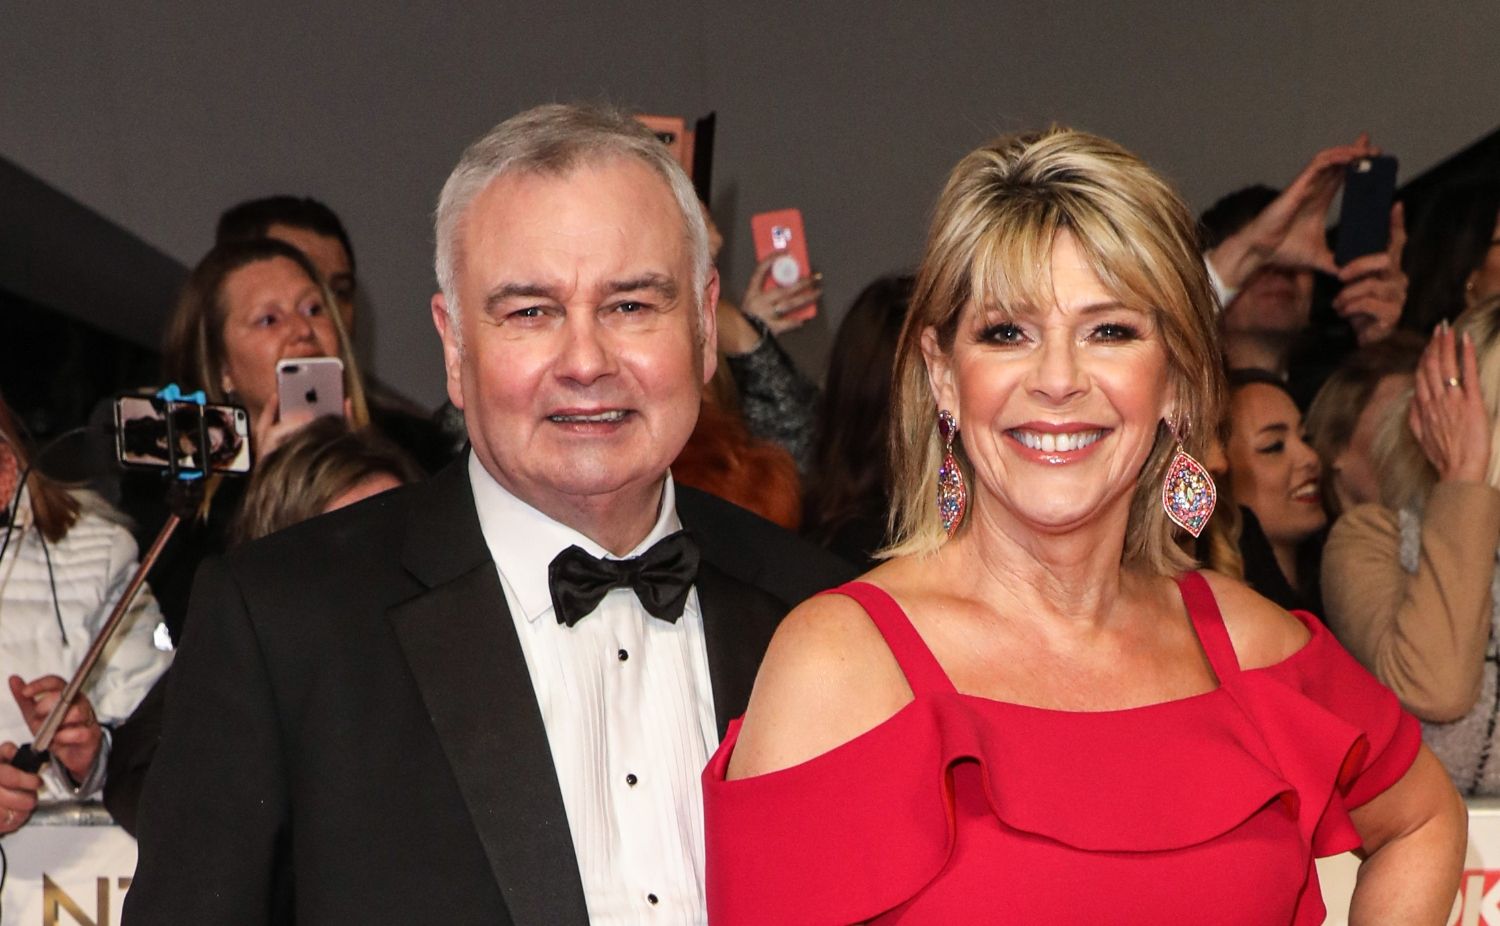 Ruth Langsford shows off Super Saturday hair cut on dog walk